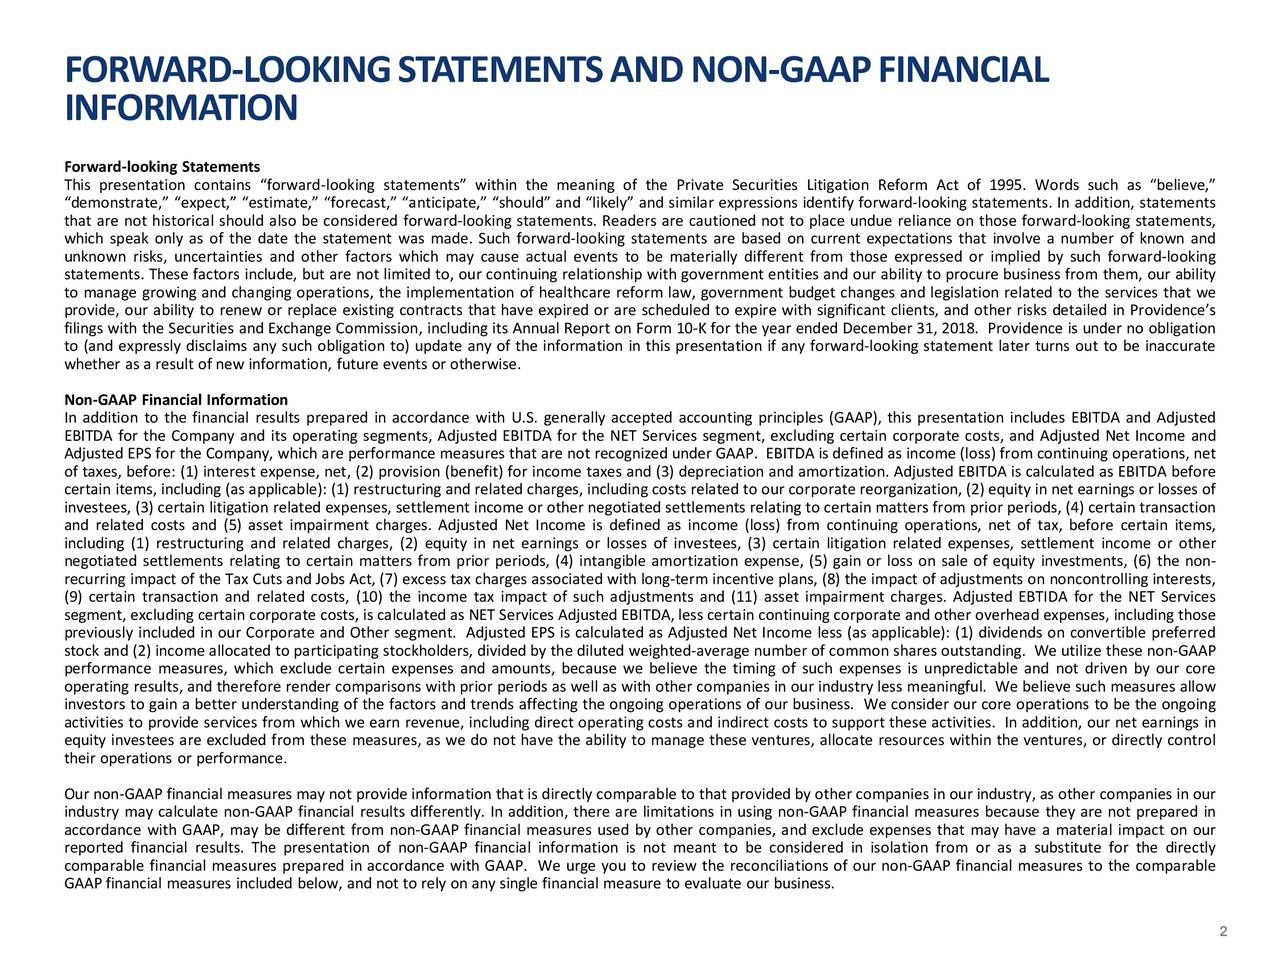 """INFORMATION Forward-looking Statements This presentation contains """"forward-looking statements"""" within the meaning of the Private Securities Litigation Reform Act of 1995. Words such as """"believe,"""" """"demonstrate,"""" """"expect,"""" """"estimate,"""" """"forecast,"""" """"anticipate,"""" """"should"""" and """"likely"""" and similar expressions identify forward-looking statements. In addition, statements that are not historical should also be considered forward-looking statements. Readers are cautioned not to place undue reliance on those forward-looking statements, which speak only as of the date the statement was made. Such forward-looking statements are based on current expectations that involve a number of known and unknown risks, uncertainties and other factors which may cause actual events to be materially different from those expressed or implied by such forward-looking statements. These factors include, but are not limited to, our continuing relationship with government entities and our ability to procure business from them, our ability to manage growing and changing operations, the implementation of healthcare reform law, government budget changes and legislation related to the services that we provide, our ability to renew or replace existing contracts that have expired or are scheduled to expire with significant clients, and other risks detailed in Providence's filings with the Securities and Exchange Commission, including its Annual Report on Form 10-K for the year ended December 31, 2018. Providence is under no obligation to (and expressly disclaims any such obligation to) update any of the information in this presentation if any forward-looking statement later turns out to be inaccurate whether as a result of new information, future events or otherwise. Non-GAAP Financial Information In addition to the financial results prepared in accordance with U.S. generally accepted accounting principles (GAAP), this presentation includes EBITDA and Adjusted EBITDA for the Company and its operating segmen"""